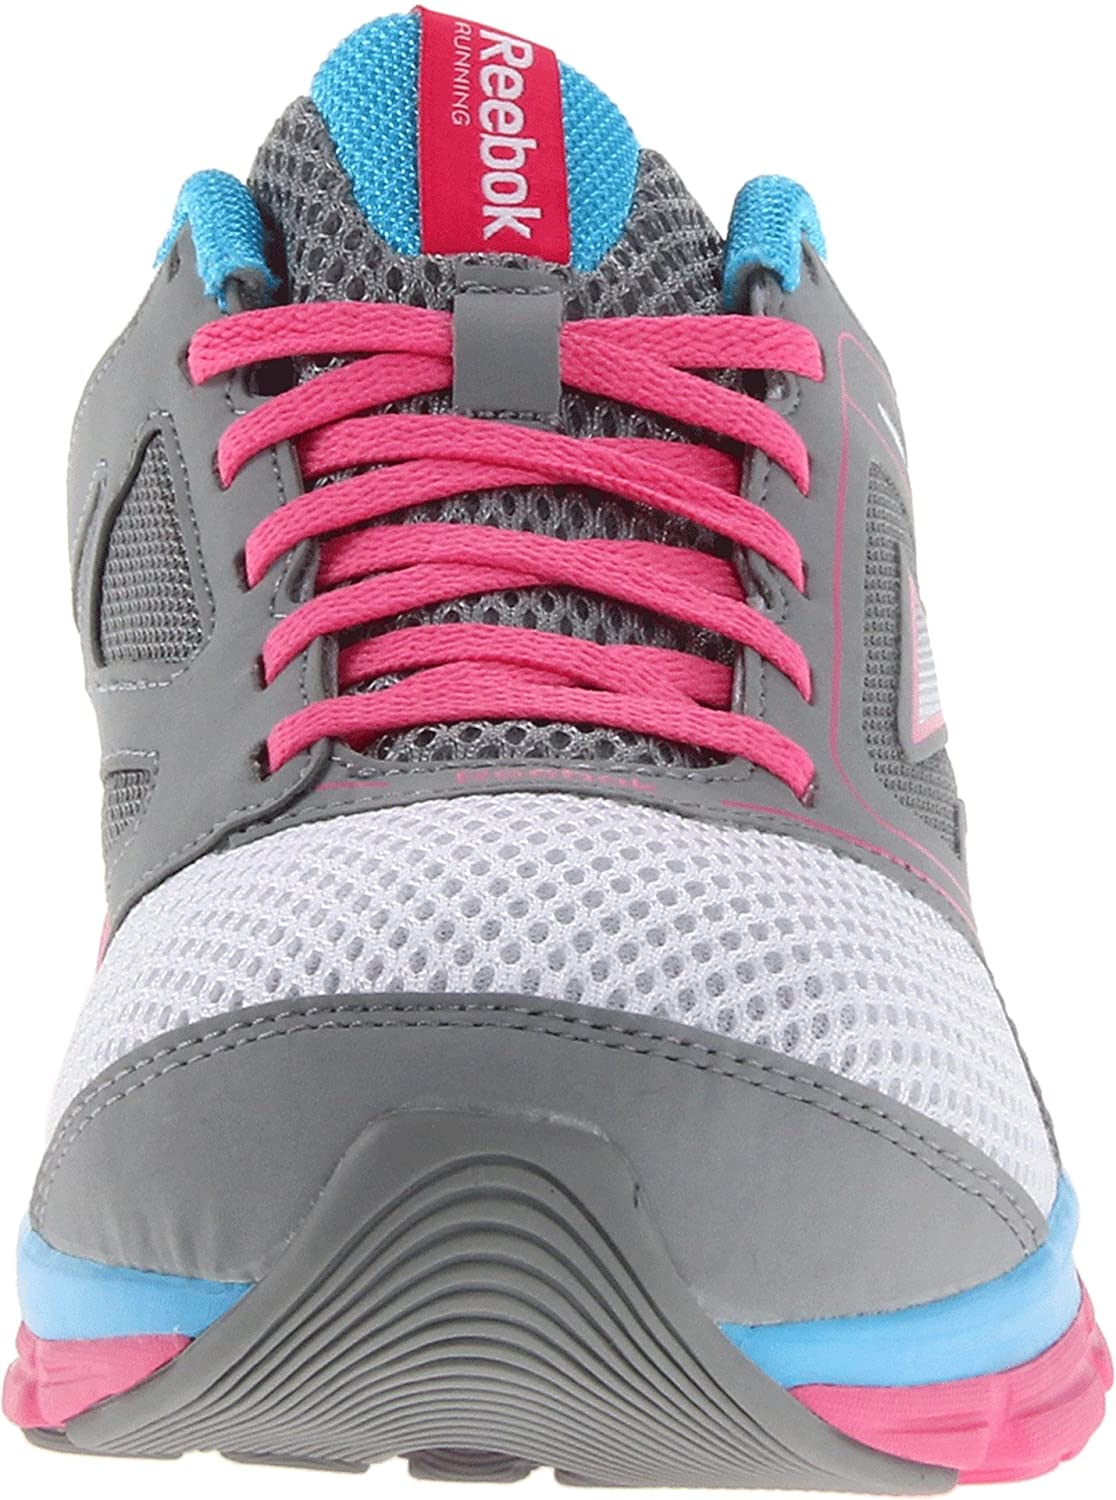 Reebok Women s Dual Turbo Fire Running Shoe